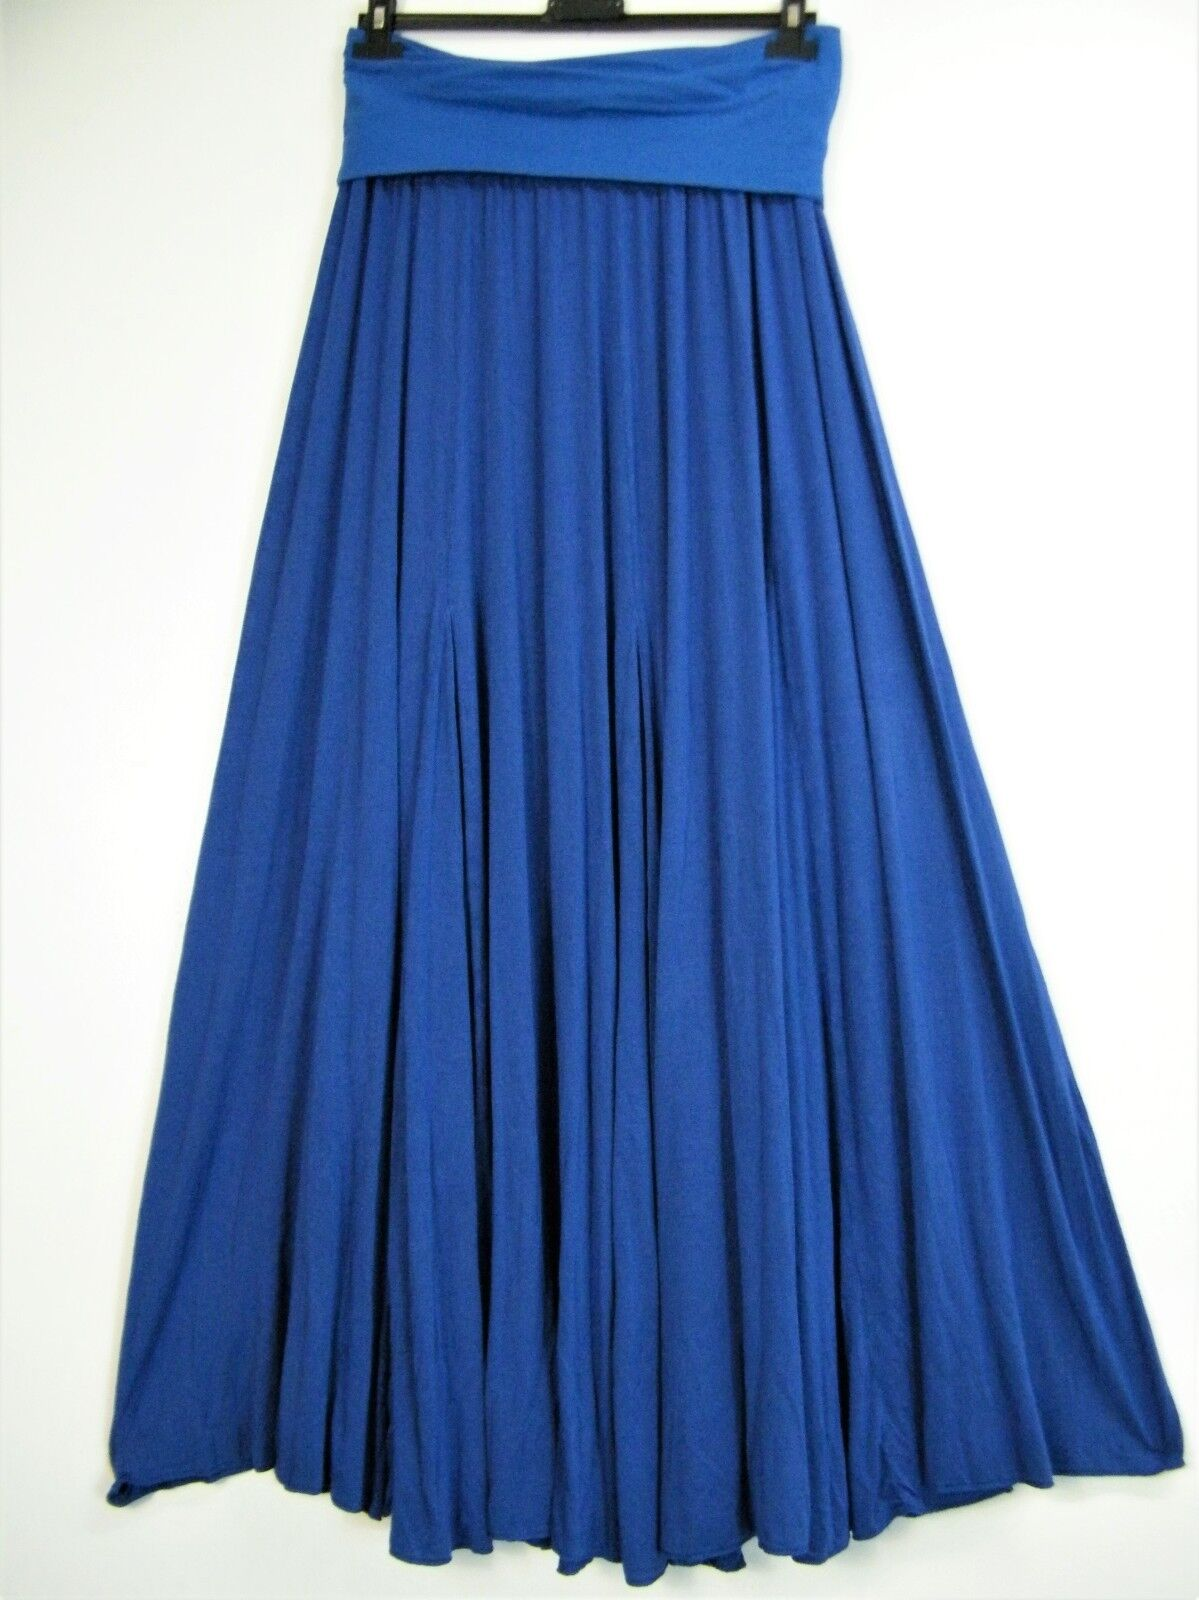 LAGENLOOK 95% VISCOSE 5%ELASTAINE 6 GORED LONG SKIRT 7 COLS ONE SIZE FITS 14-20